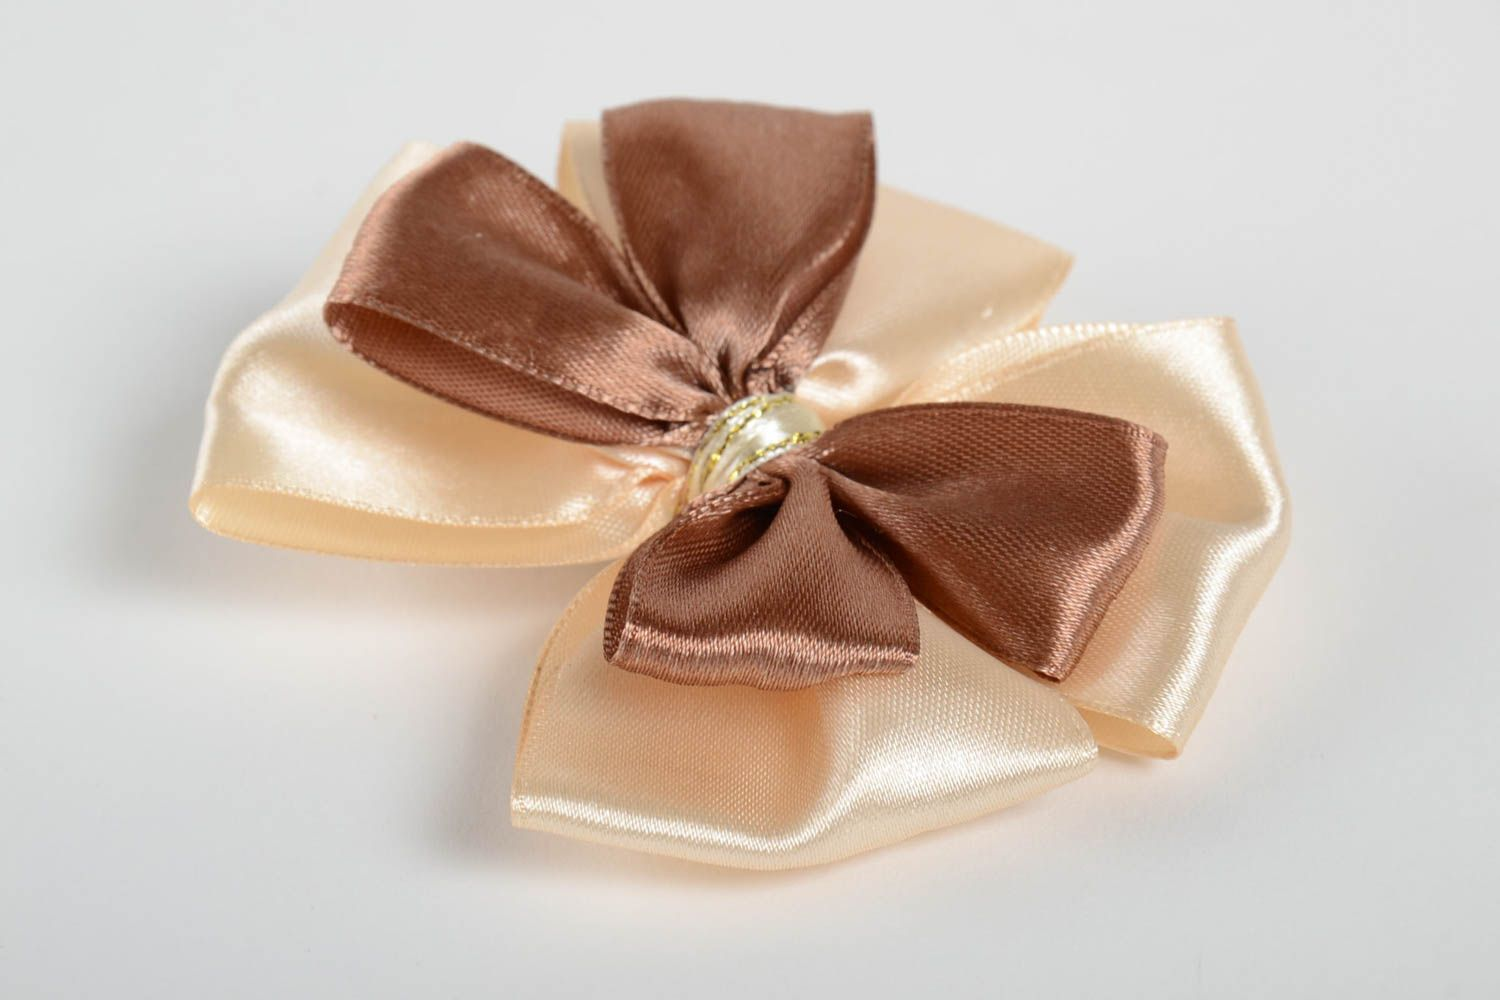 Handmade unusual hair clip accessory in shape of bow stylish satin hair clip photo 2